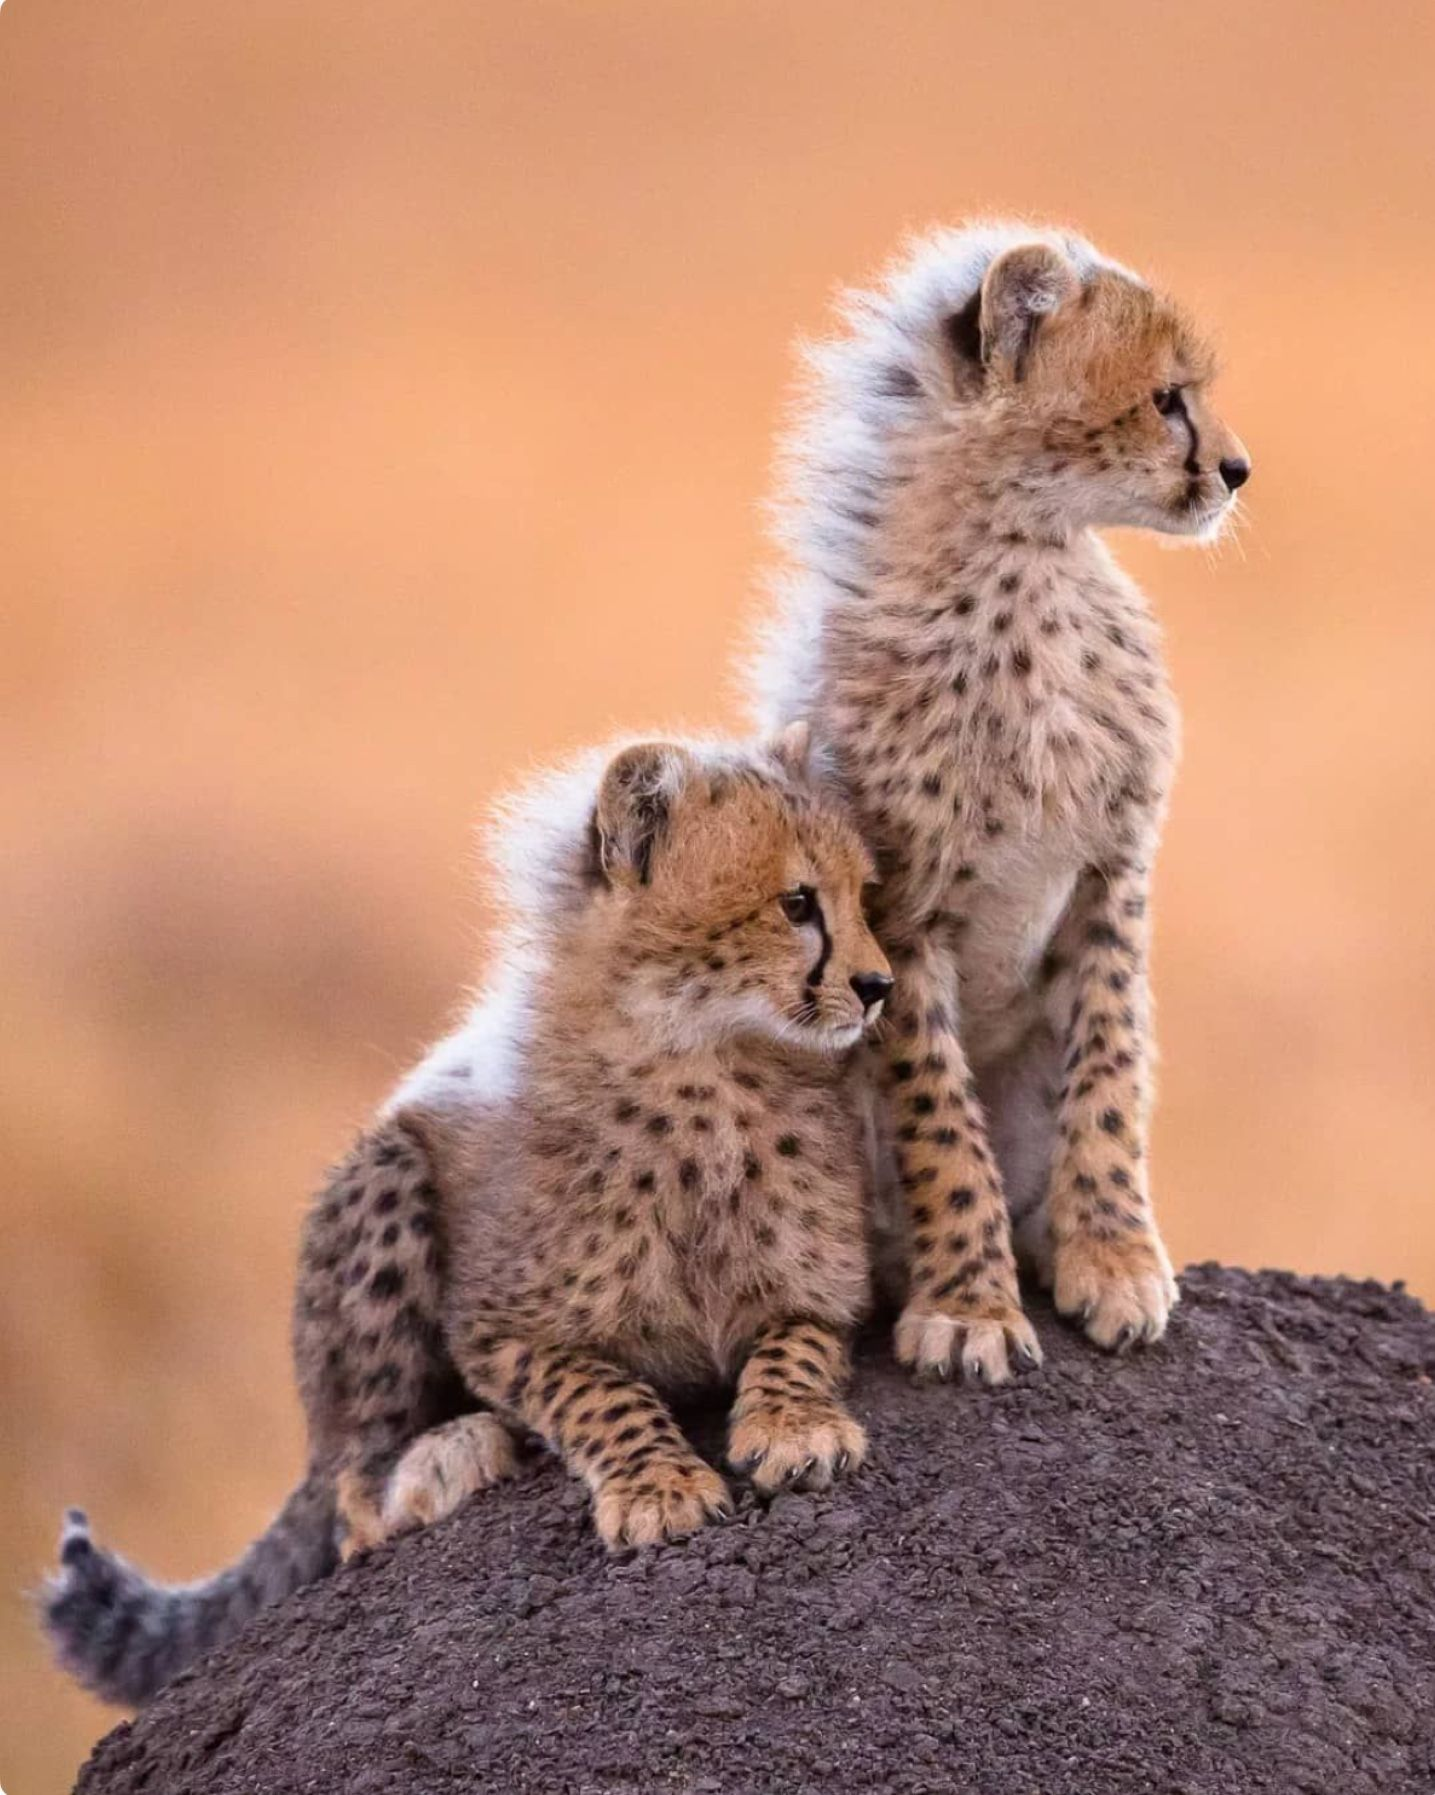 Cute Cheetah Cubs Learn Early To Seek High Ground From Which To Survey Their Surroundings Animaux Animaux Sauvages Photo Animaux